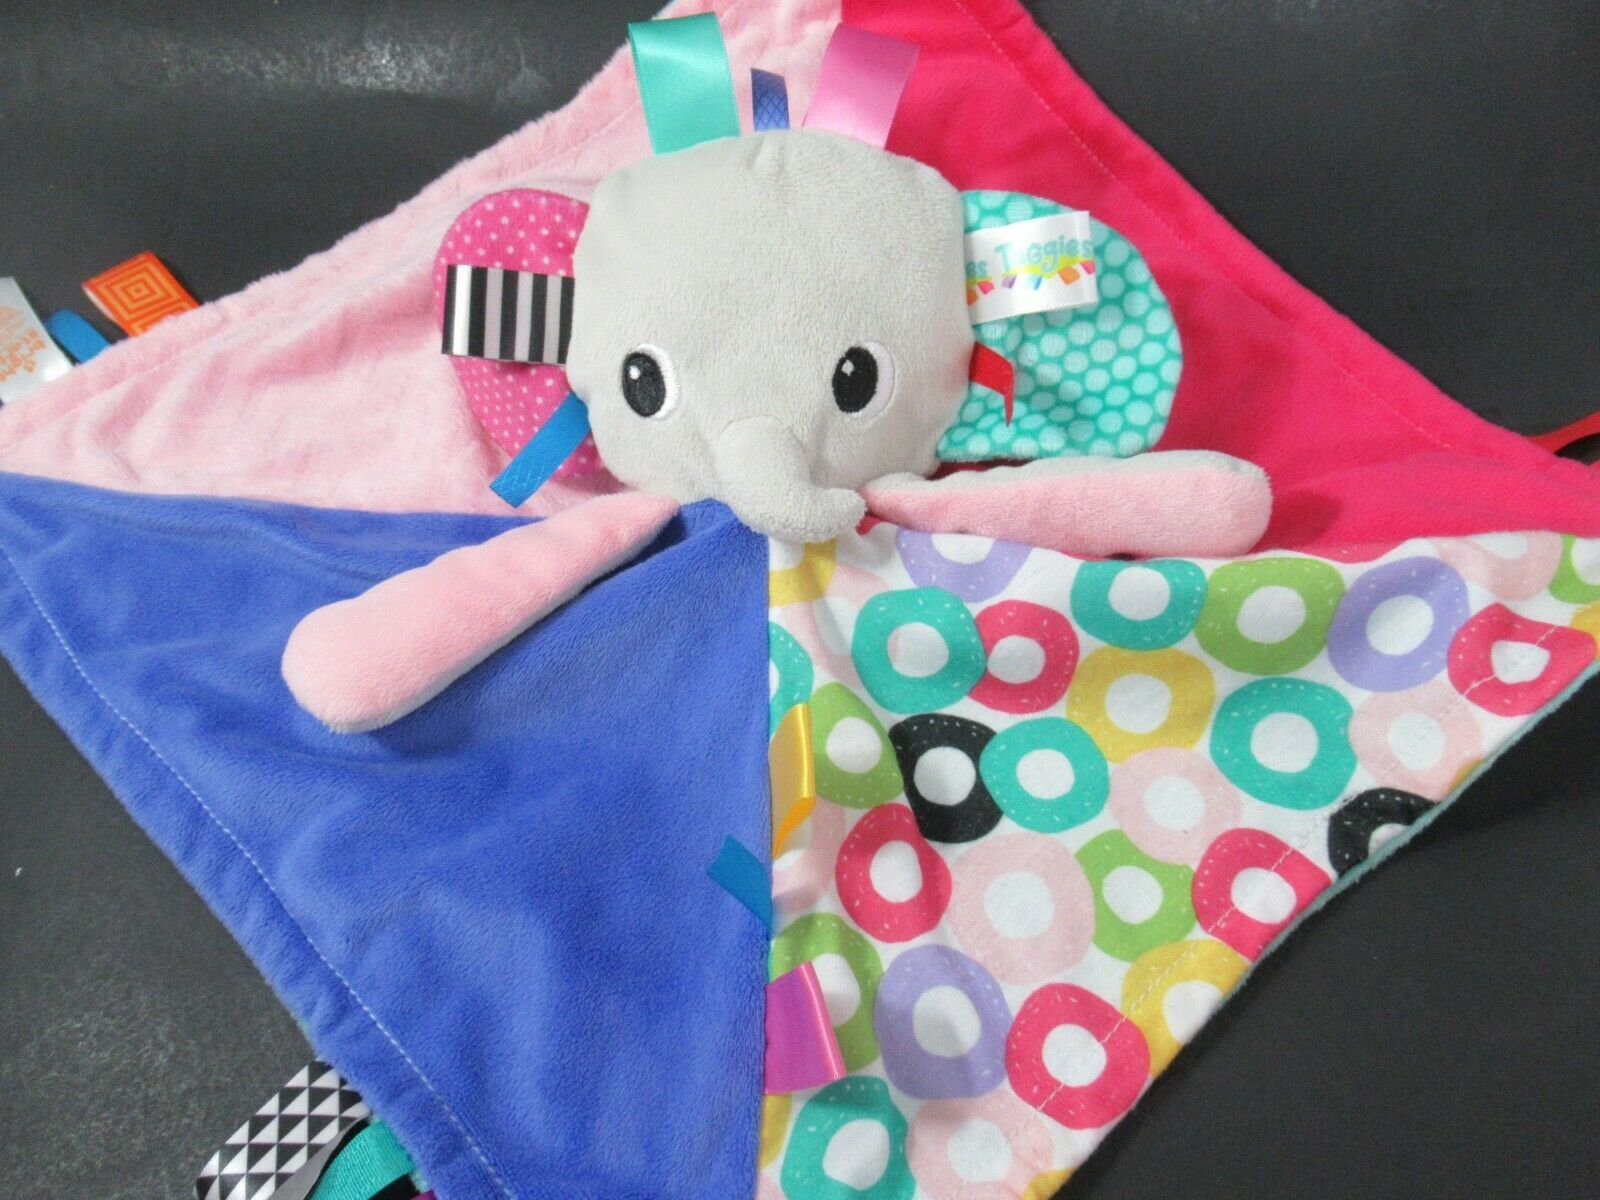 Bright Starts Taggies baby plush gray elephant security blanket blue pink green - $19.79